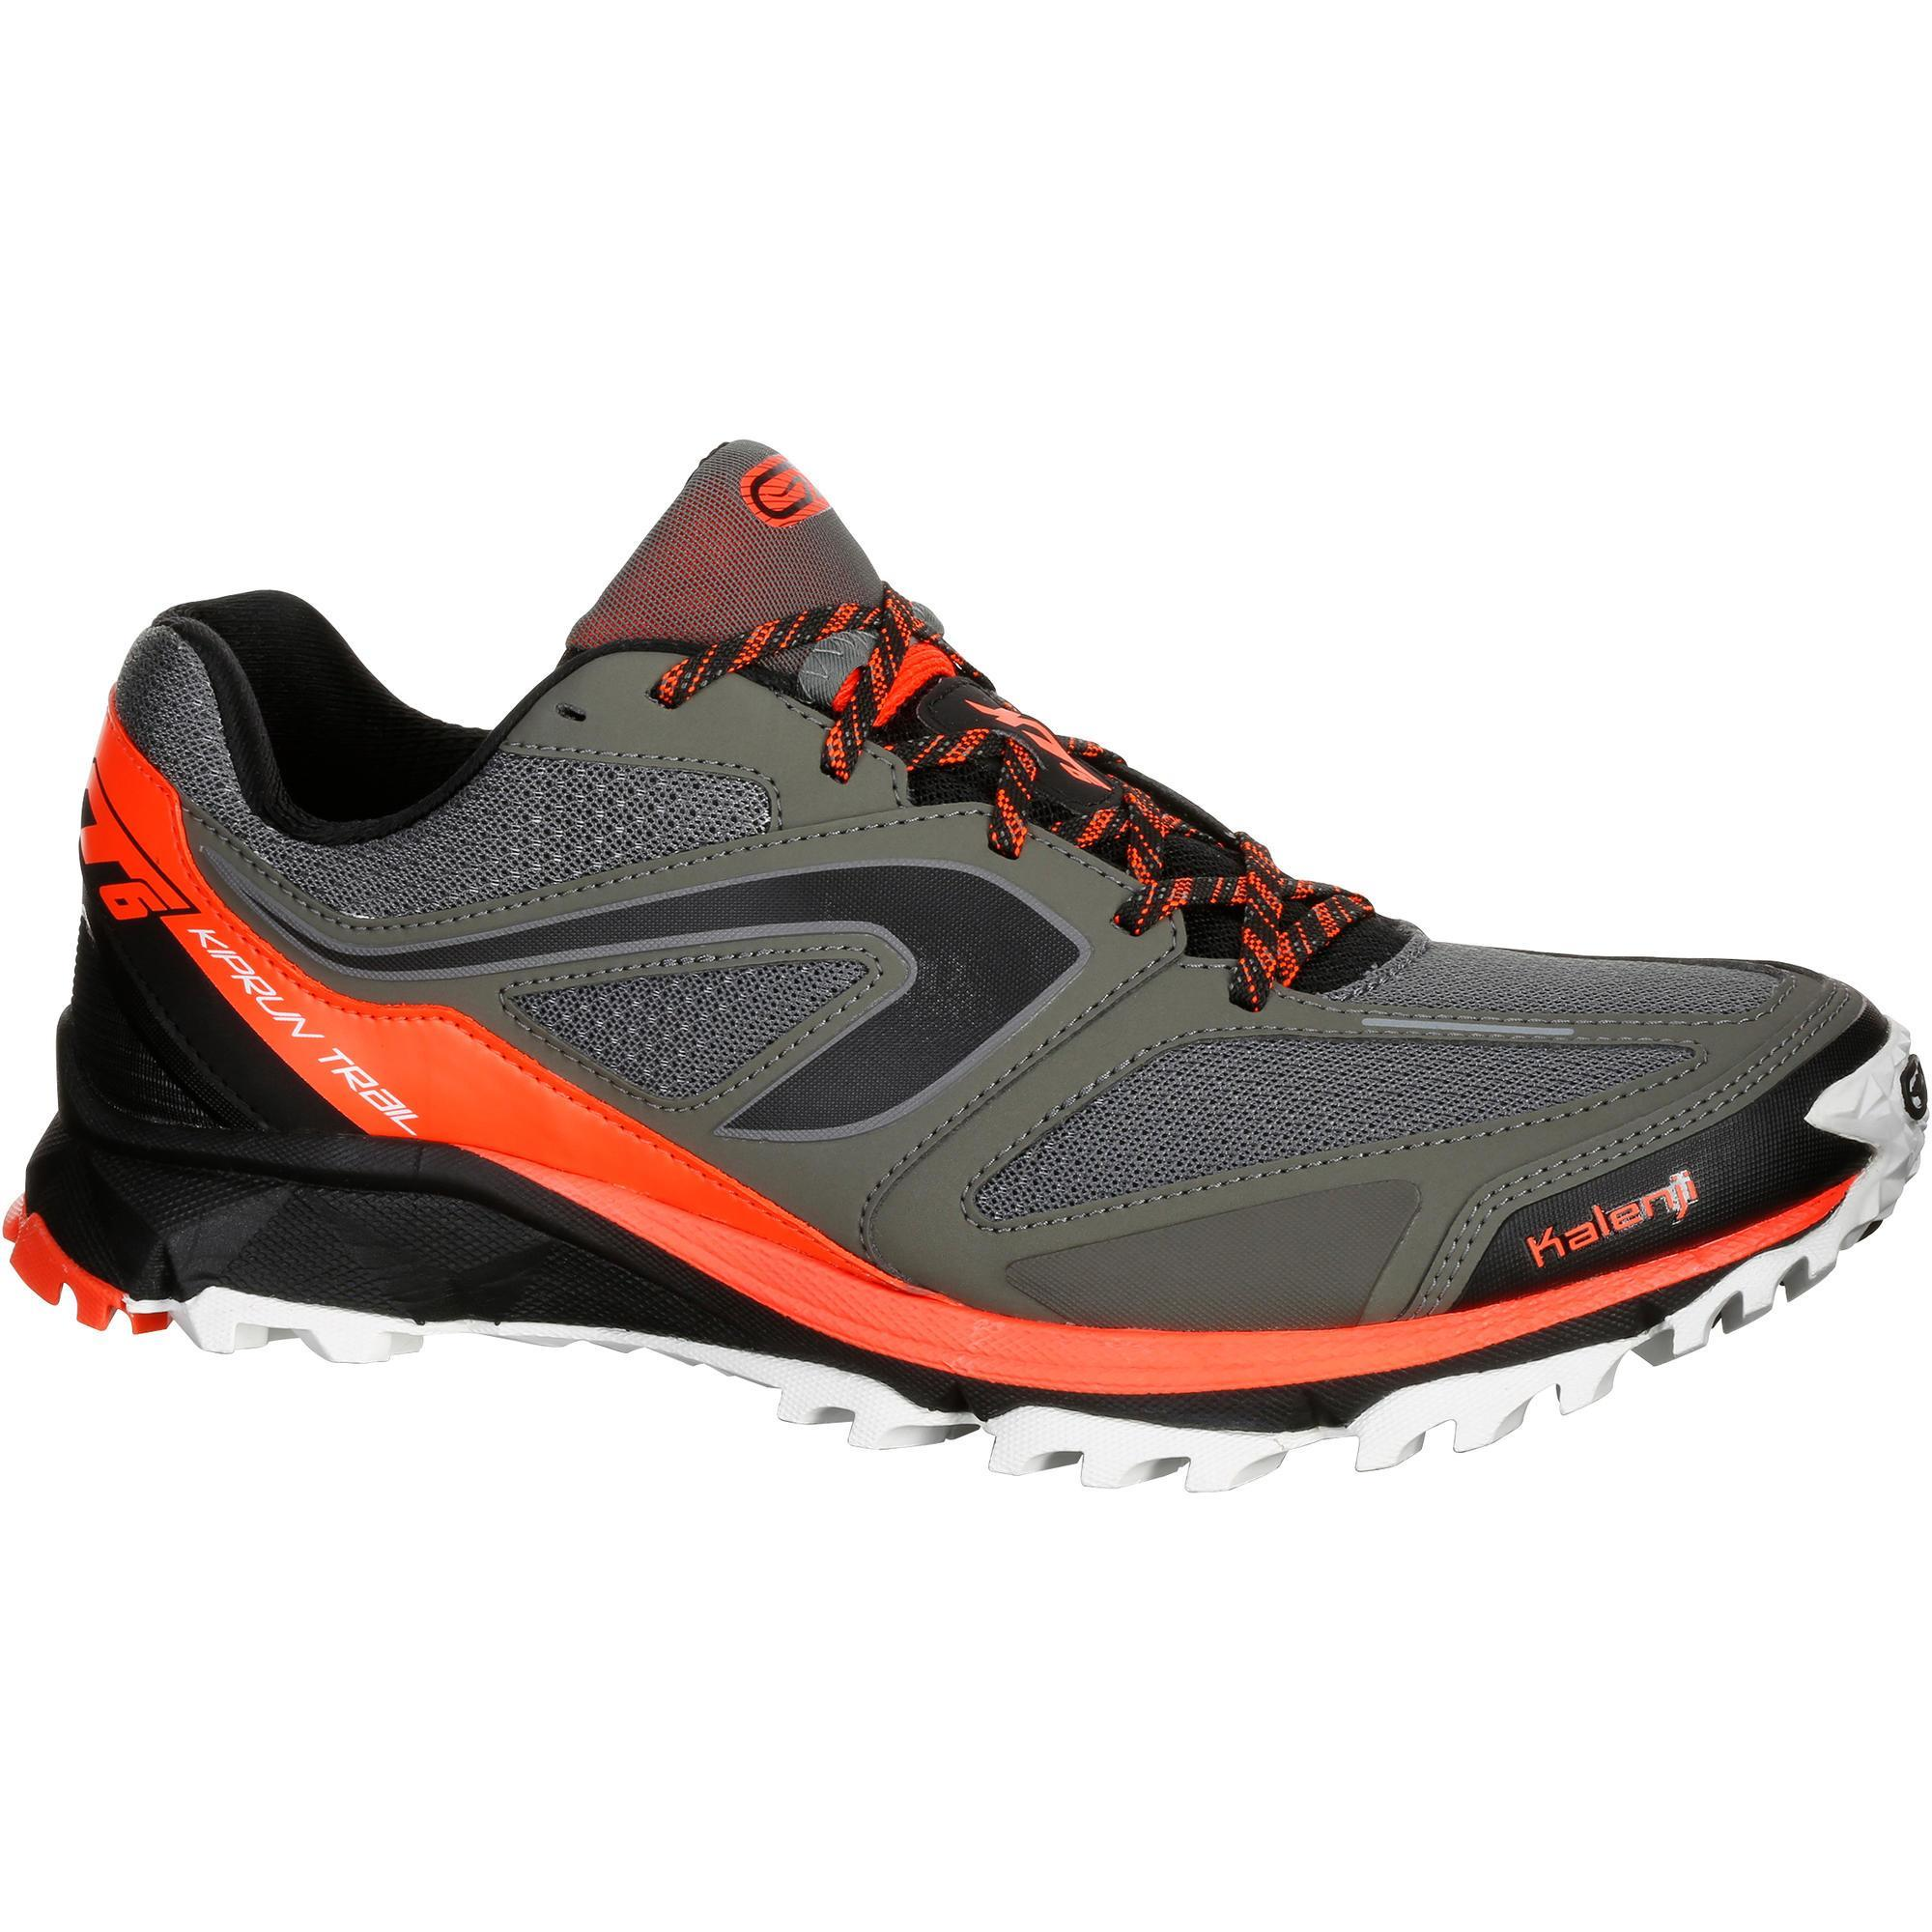 Trail Shoes Uk